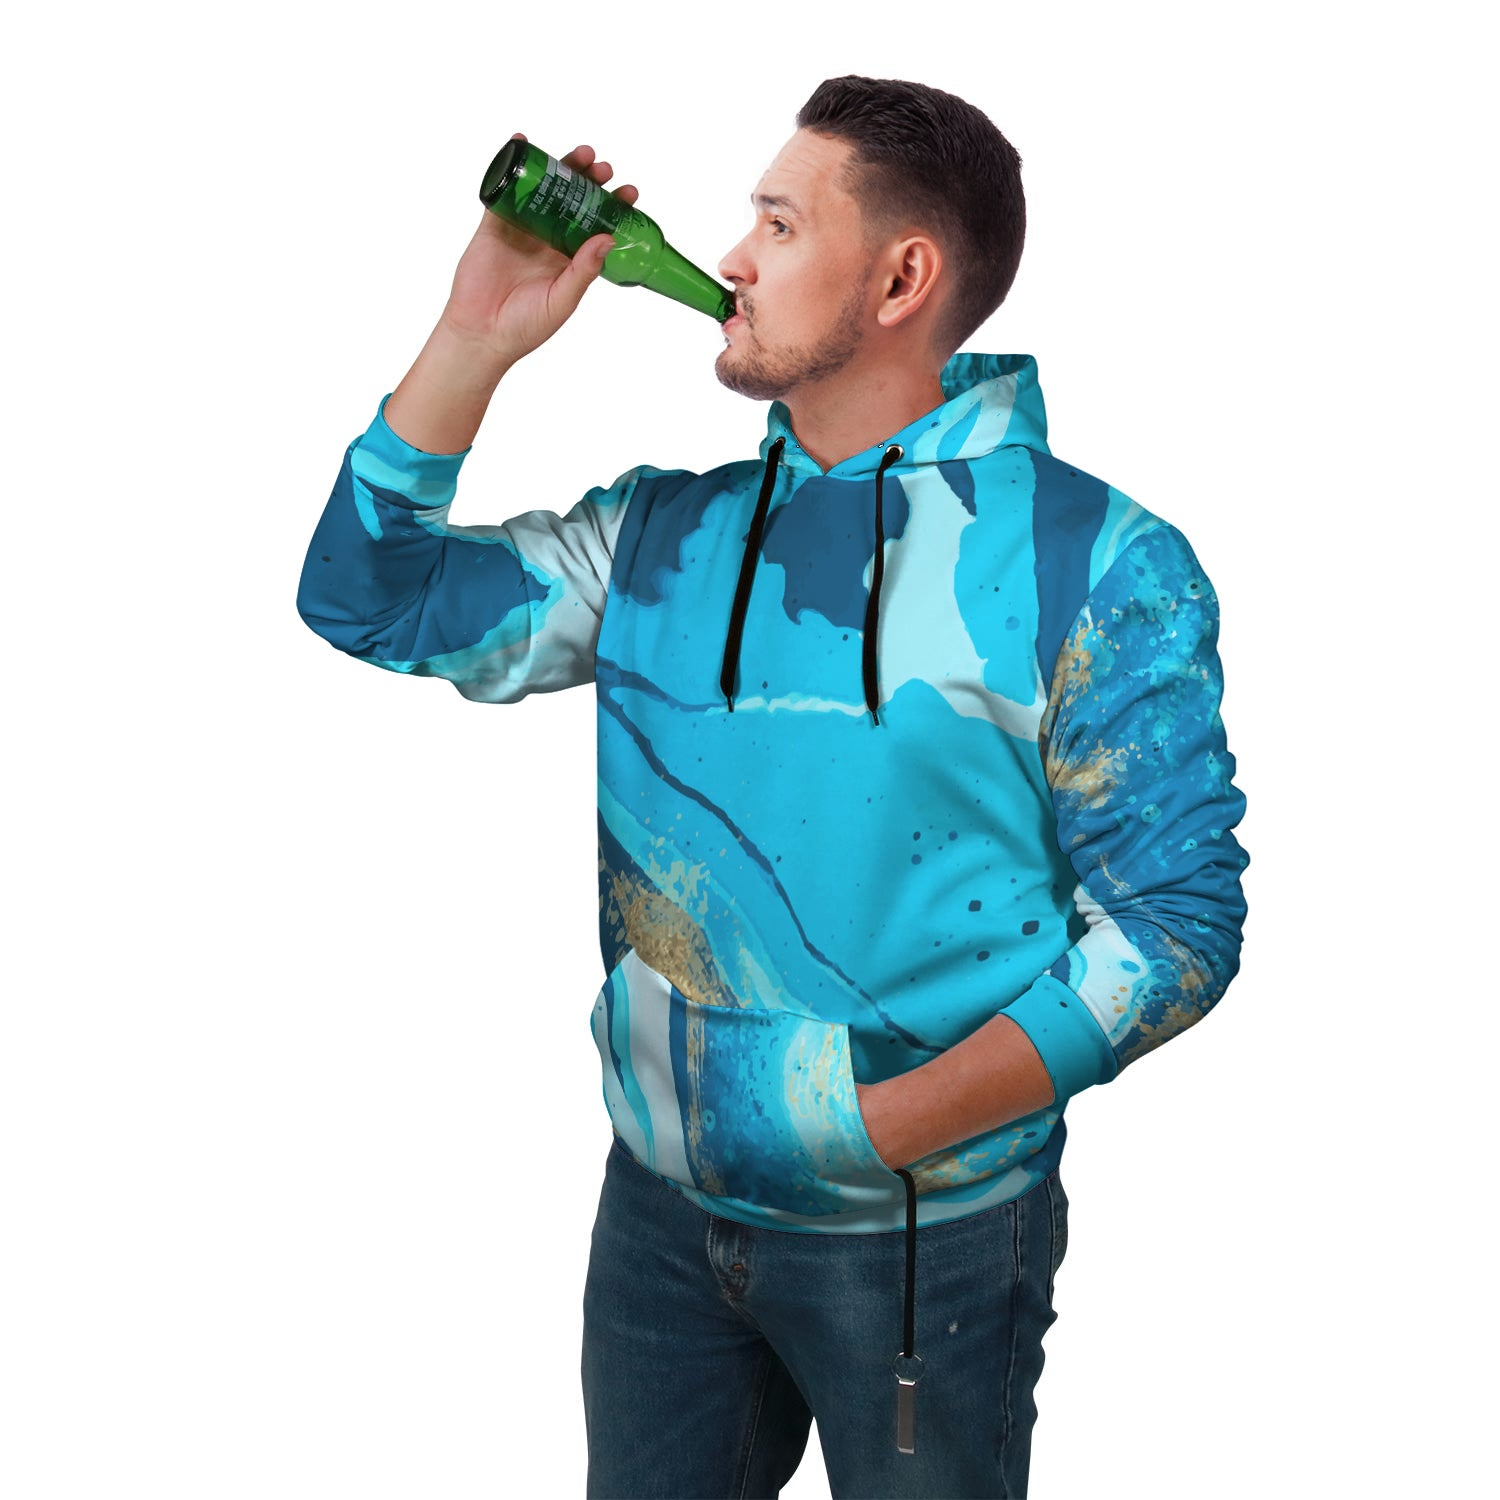 Marbled Pop Top Hoodie with built in beer or drink holder and bottle top opener in a blue marbled color